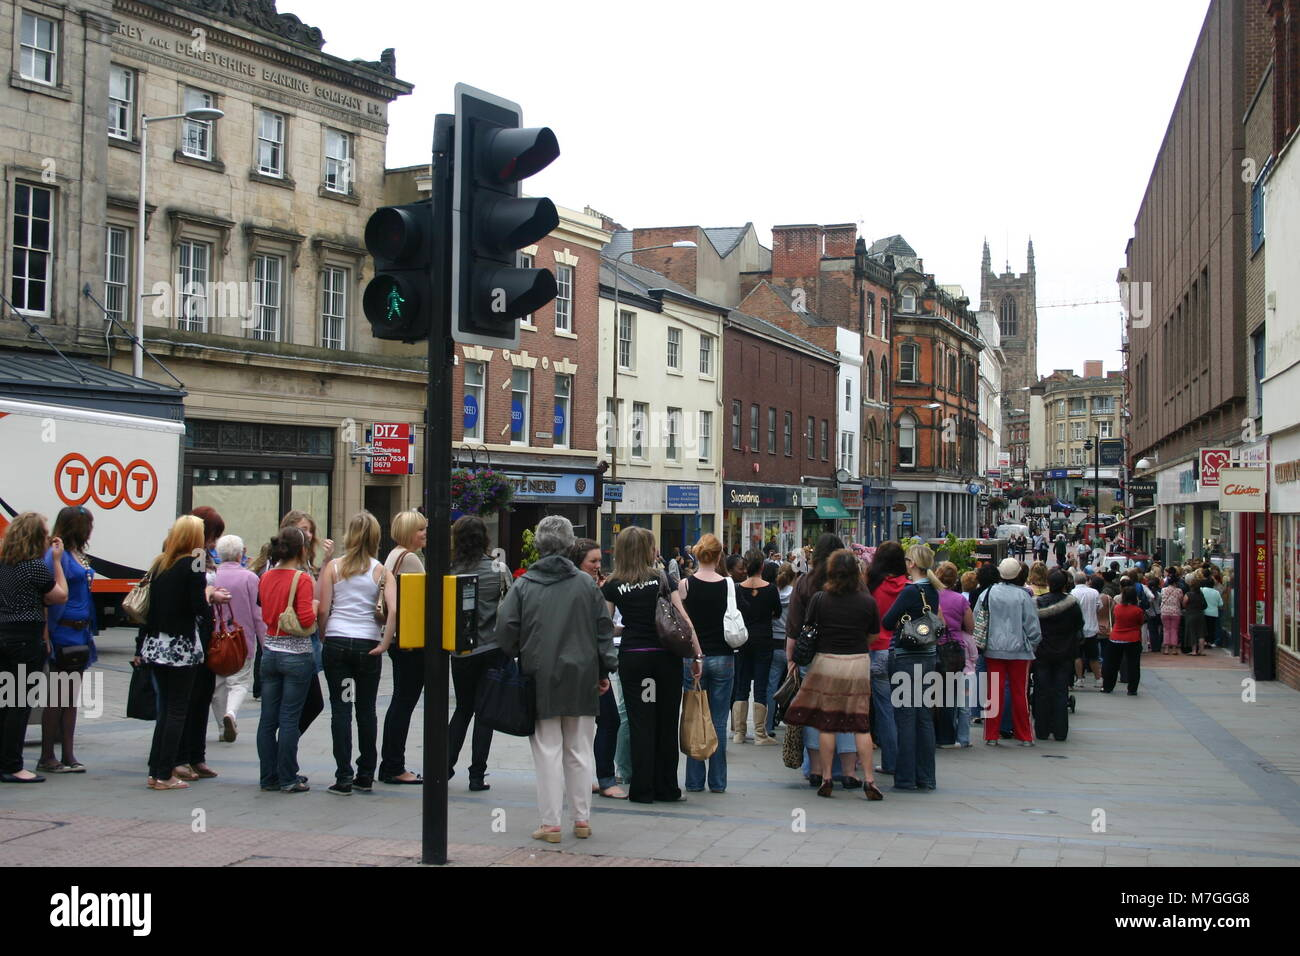 The sales, with customers forming a long queue outside a retail store Derby, UK - Stock Image